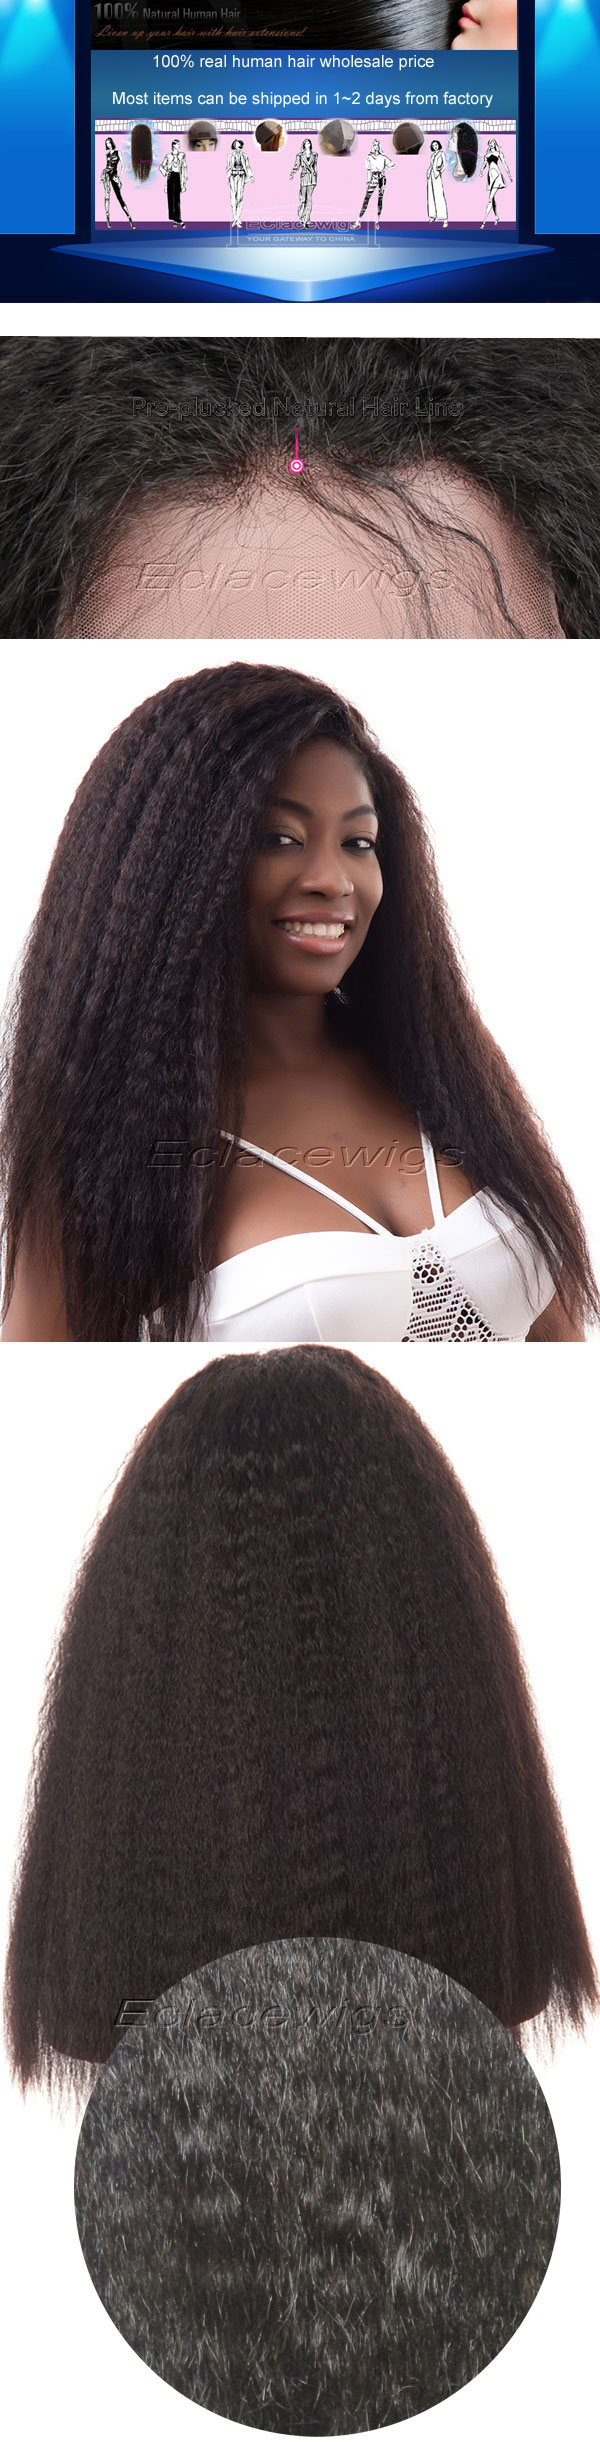 Kinky straight wig hair